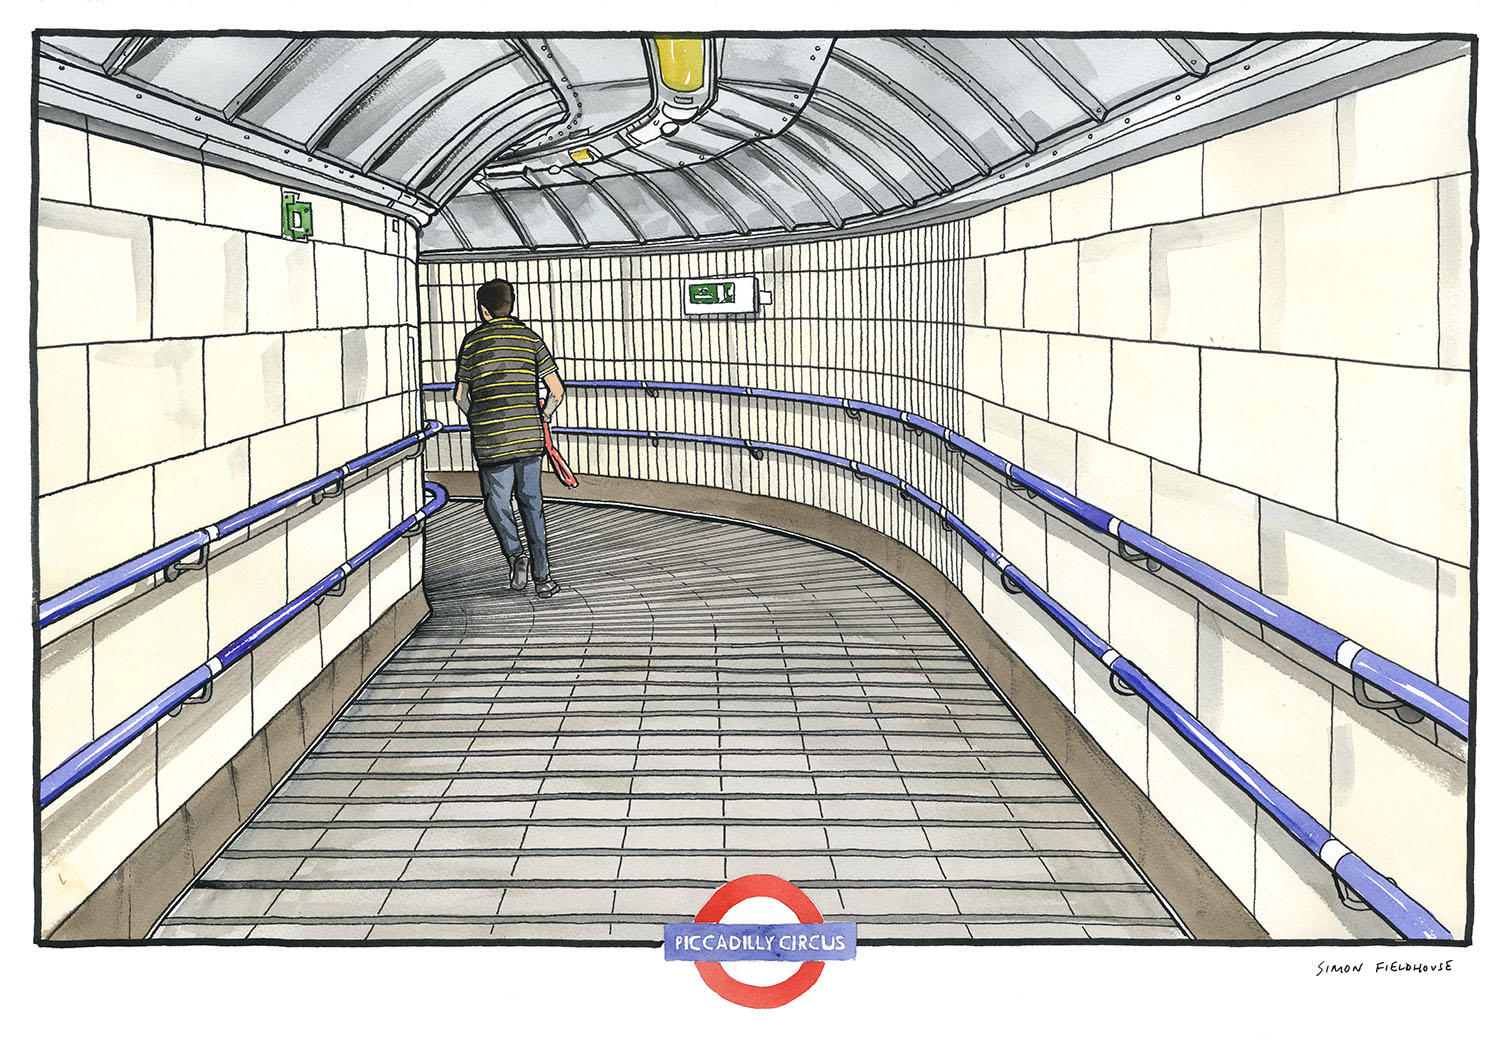 Piccadilly Circus – London Underground